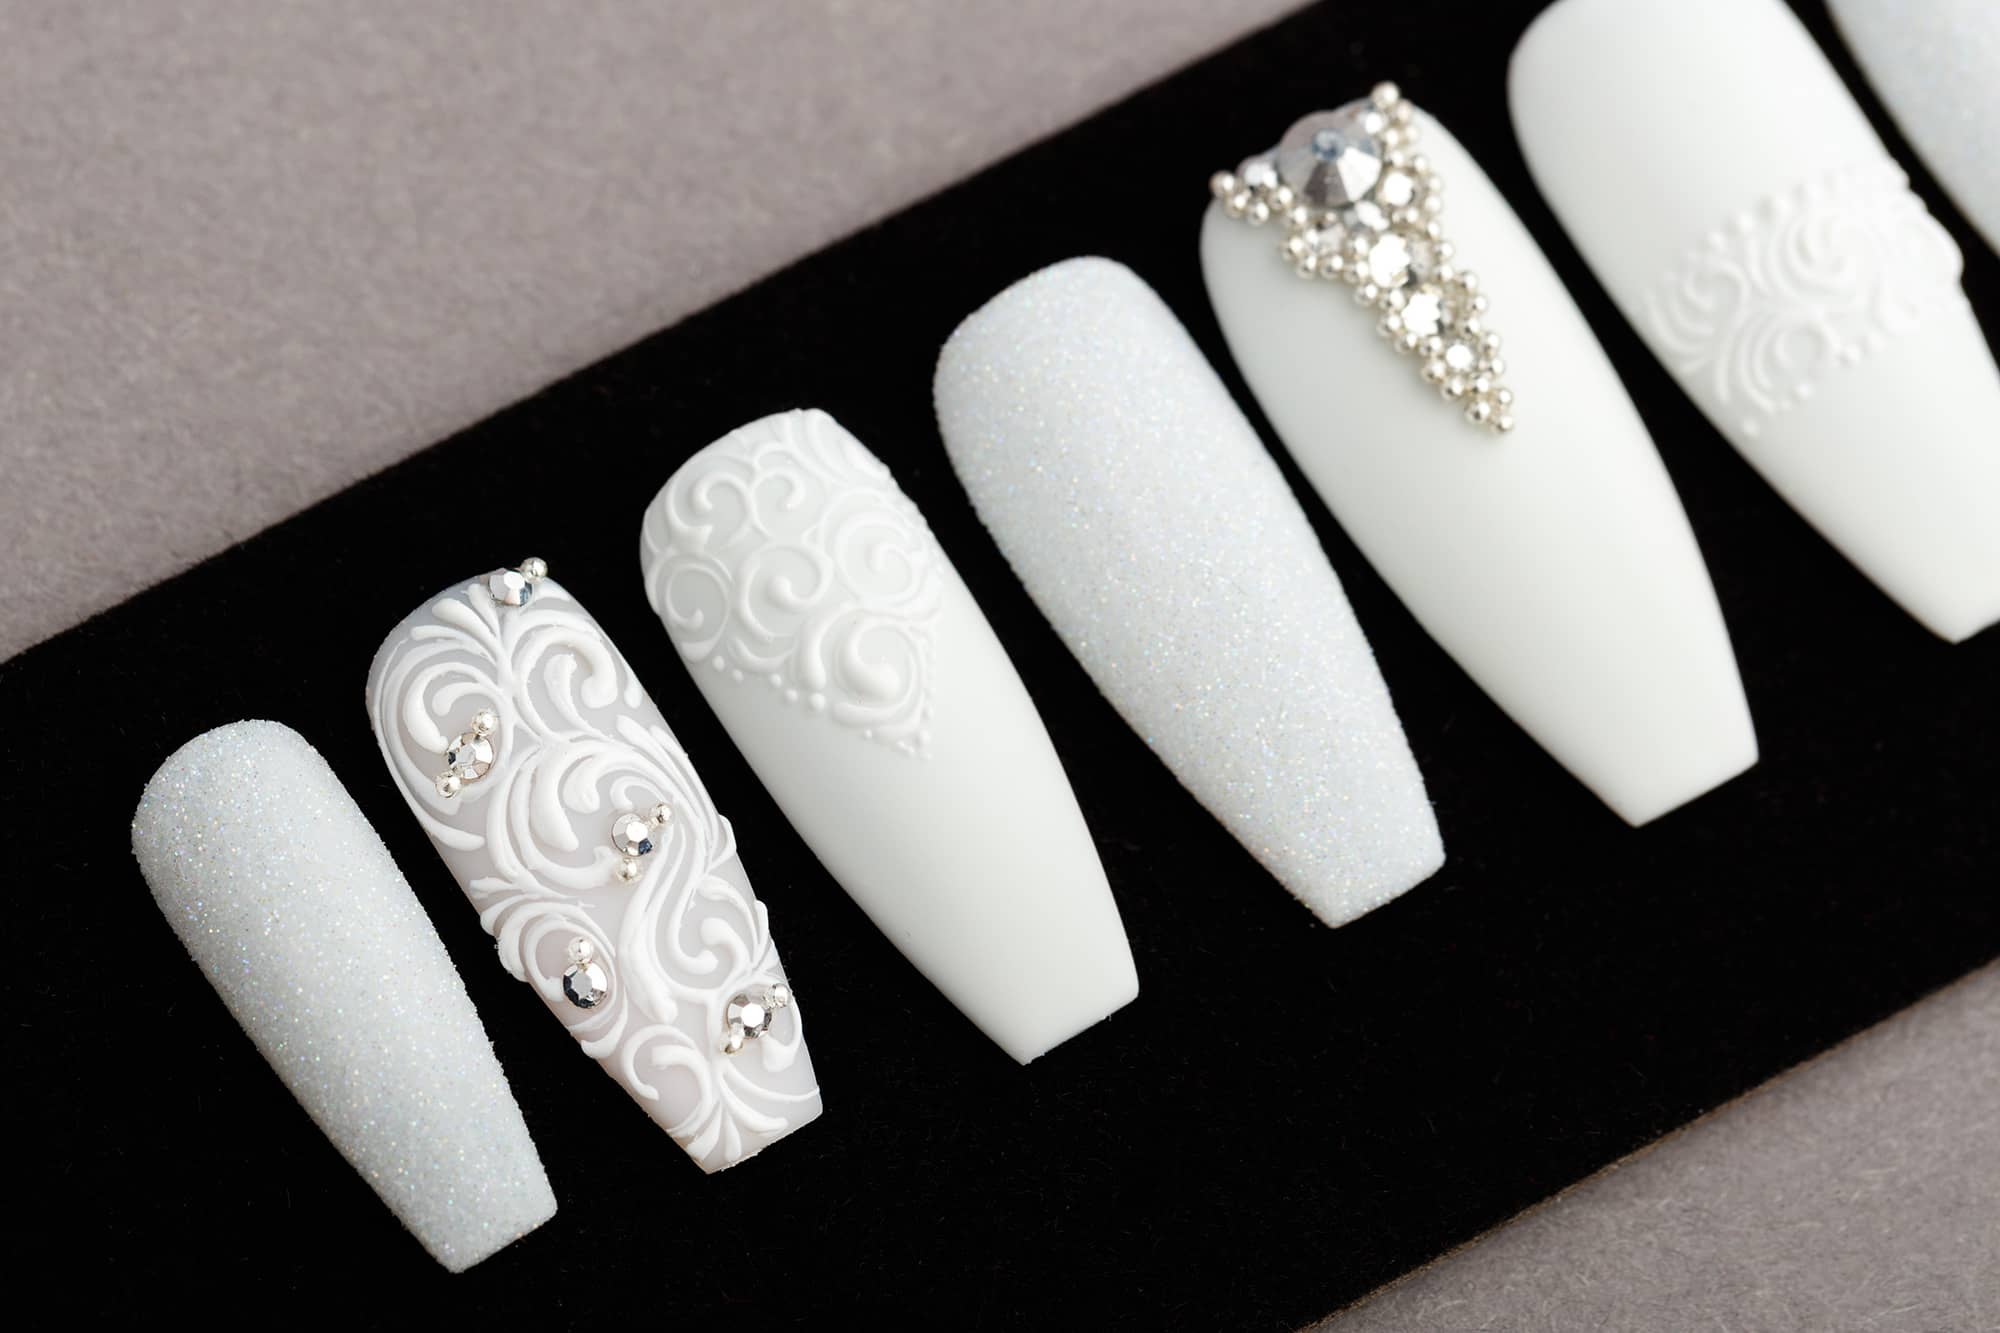 All White Press on Nails with Swarovski Crystals | Nail Art | Fake Nails | False Nails | Glue On Nails | Tracery Nails | Acrylic Nails